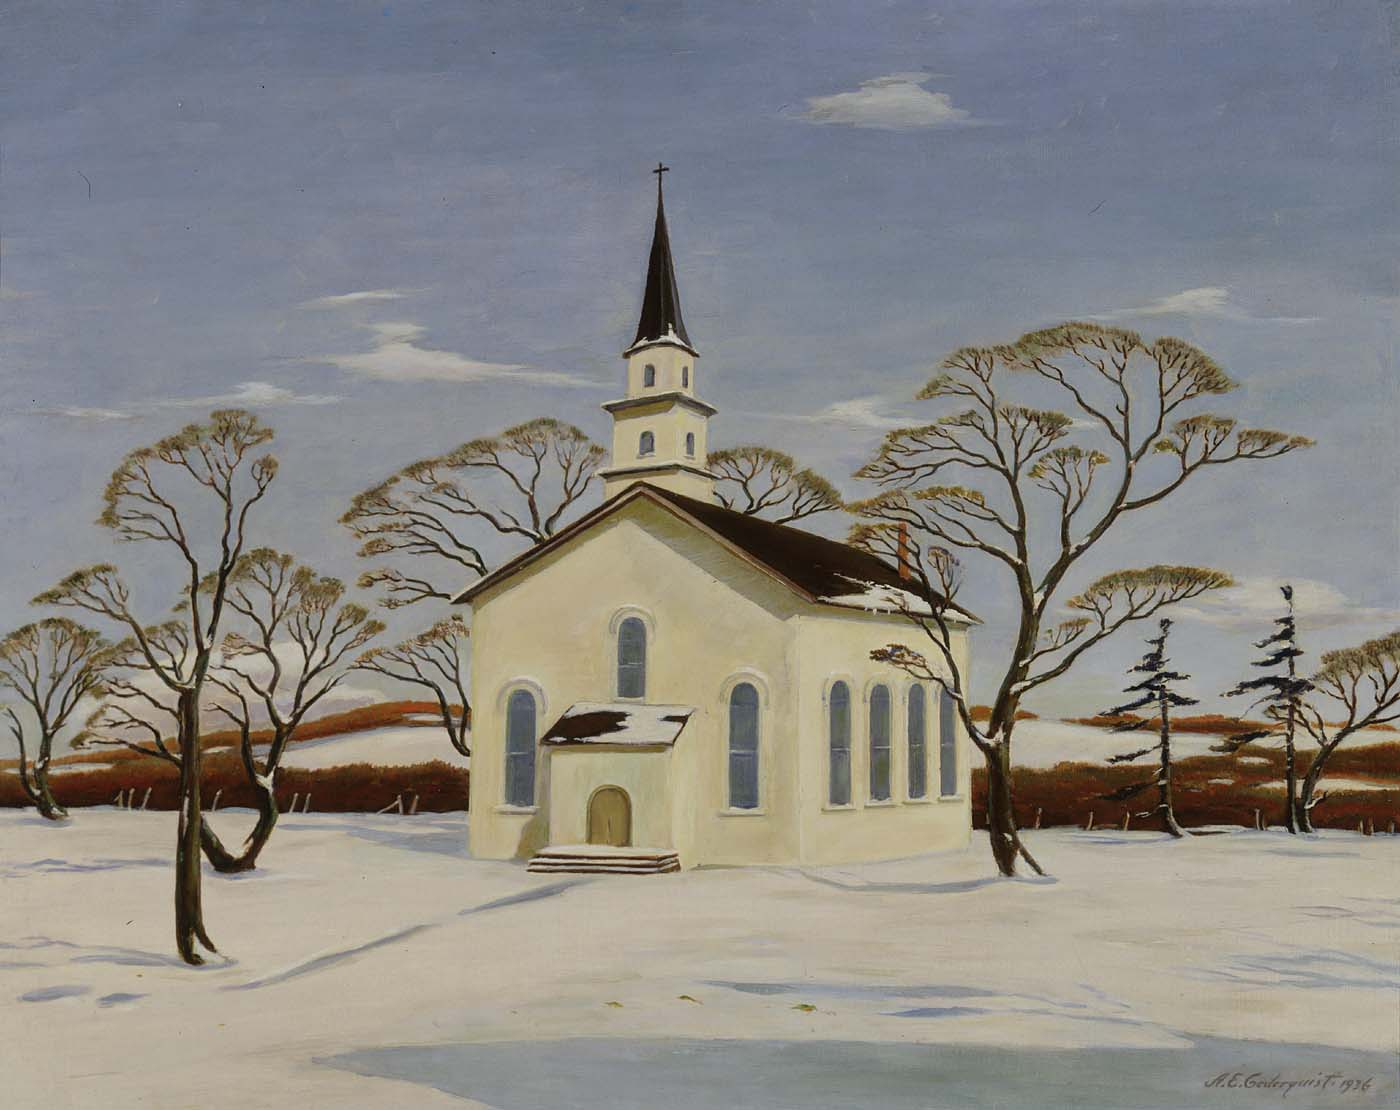 A New Deal Winter Christmas Country Church